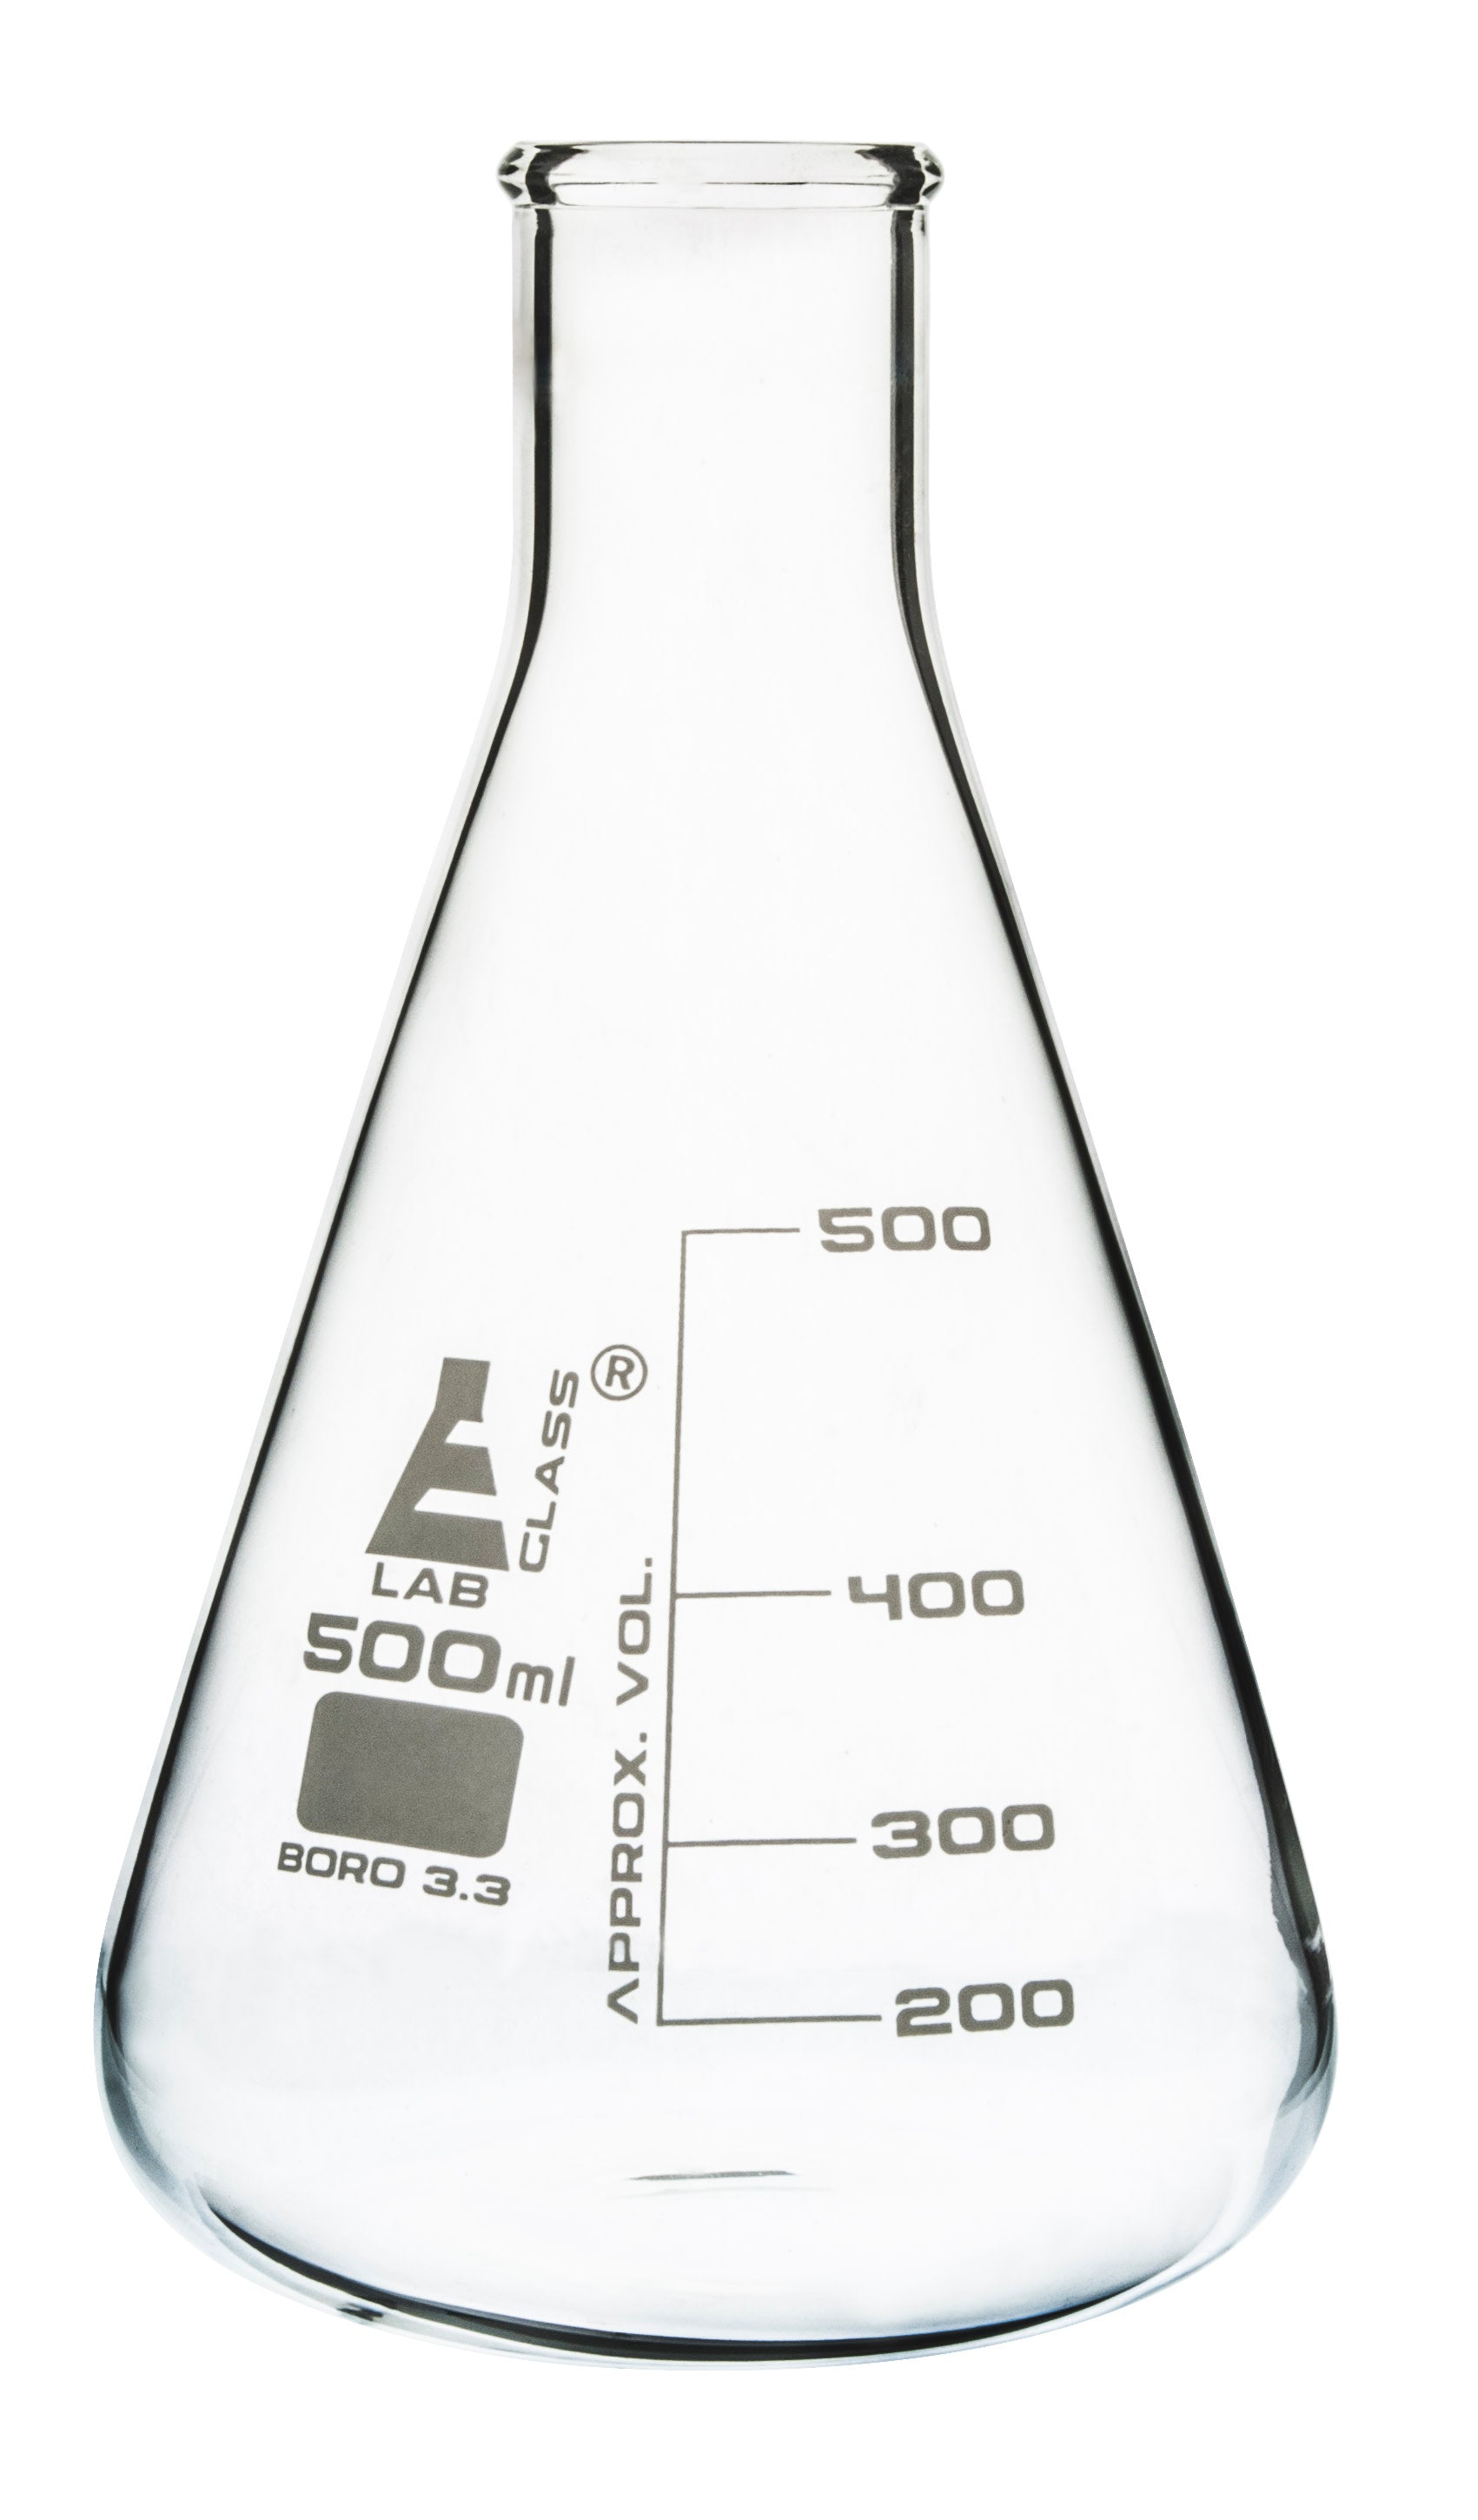 Borosilicate Glass Erlenmeyer Flask, 500 ml, 100 ml Graduations, Autoclavable